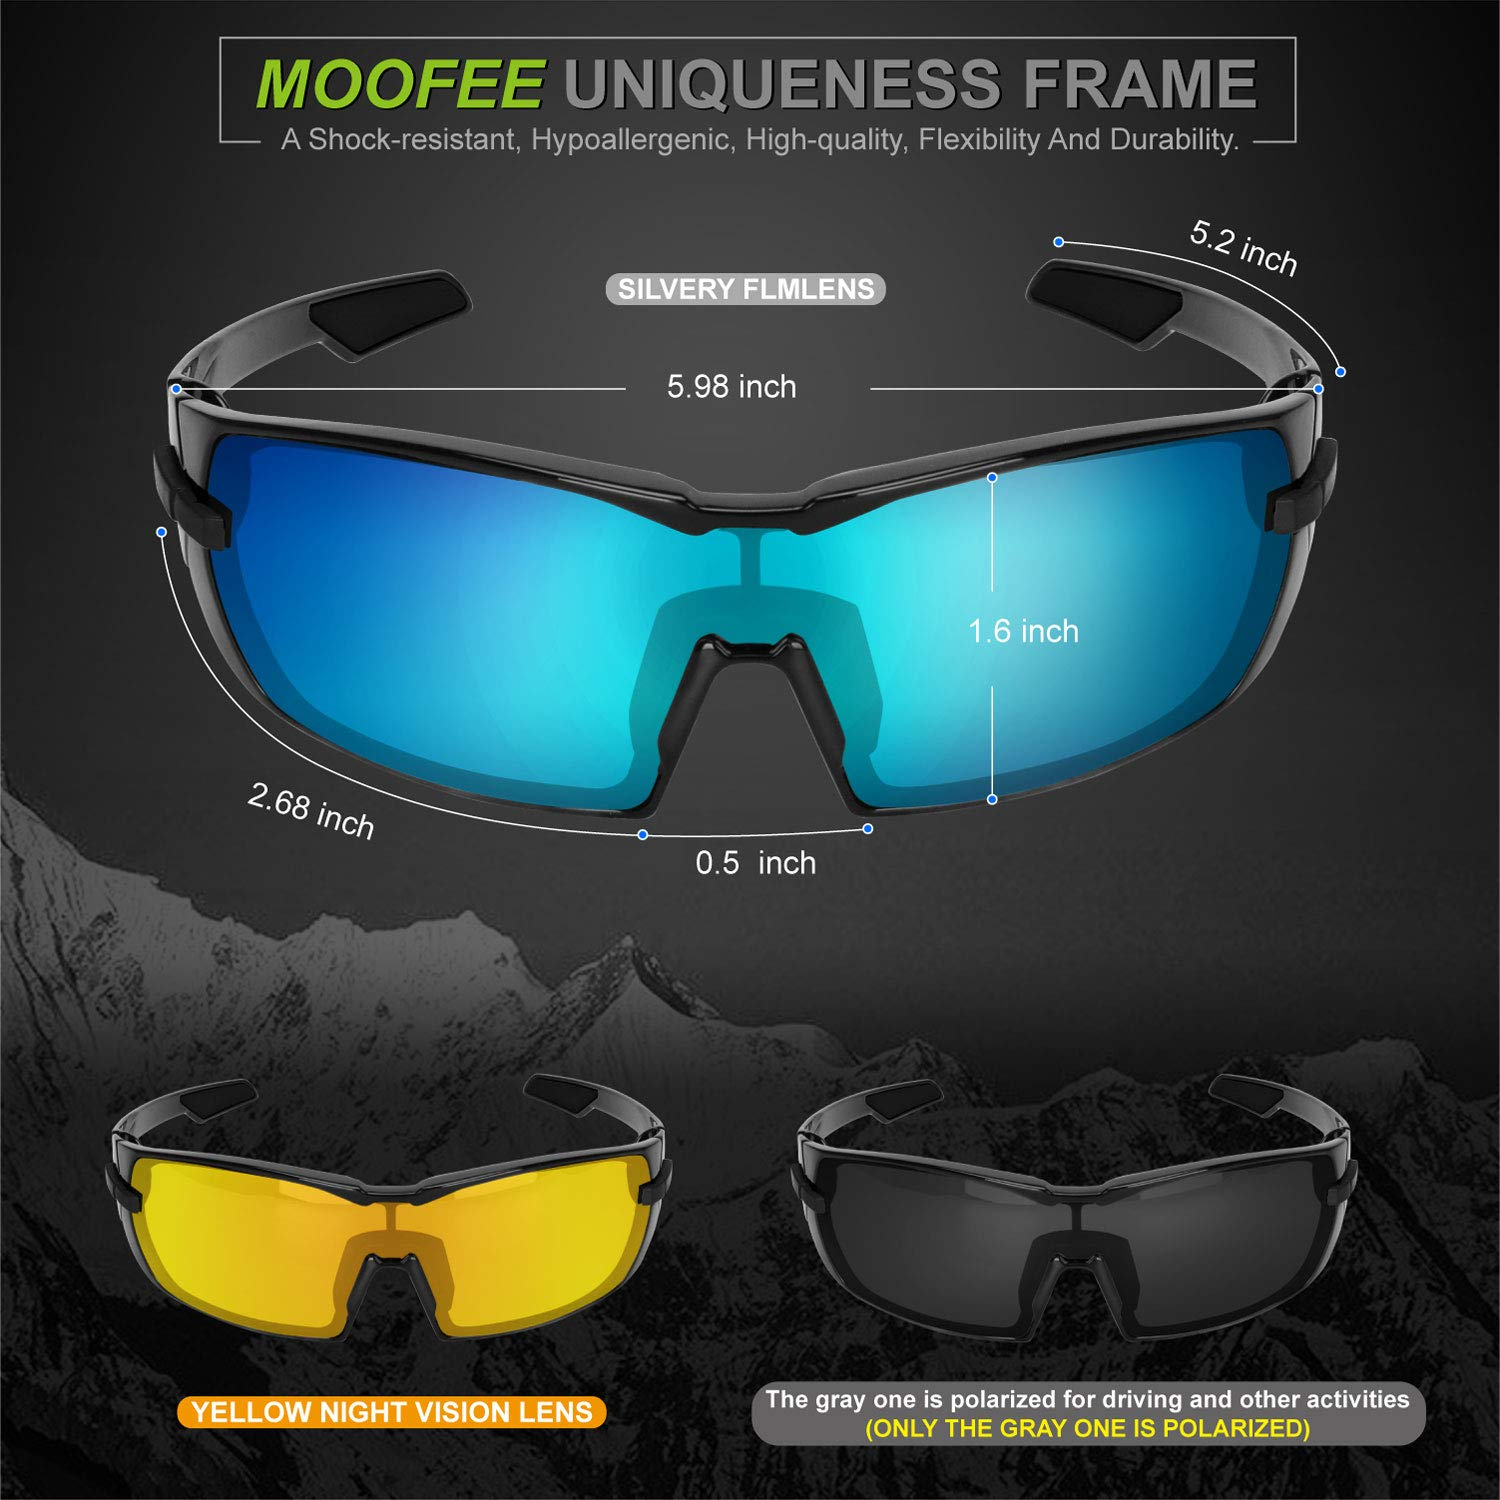 7336c5c7caf Amazon.com  Moofee Polarized Sports Sunglasses with Rotatable Legs and 3  interchangeable Lenses Outdoor Glasses for Men Women TR90 Unbreakable UV  Protection ...